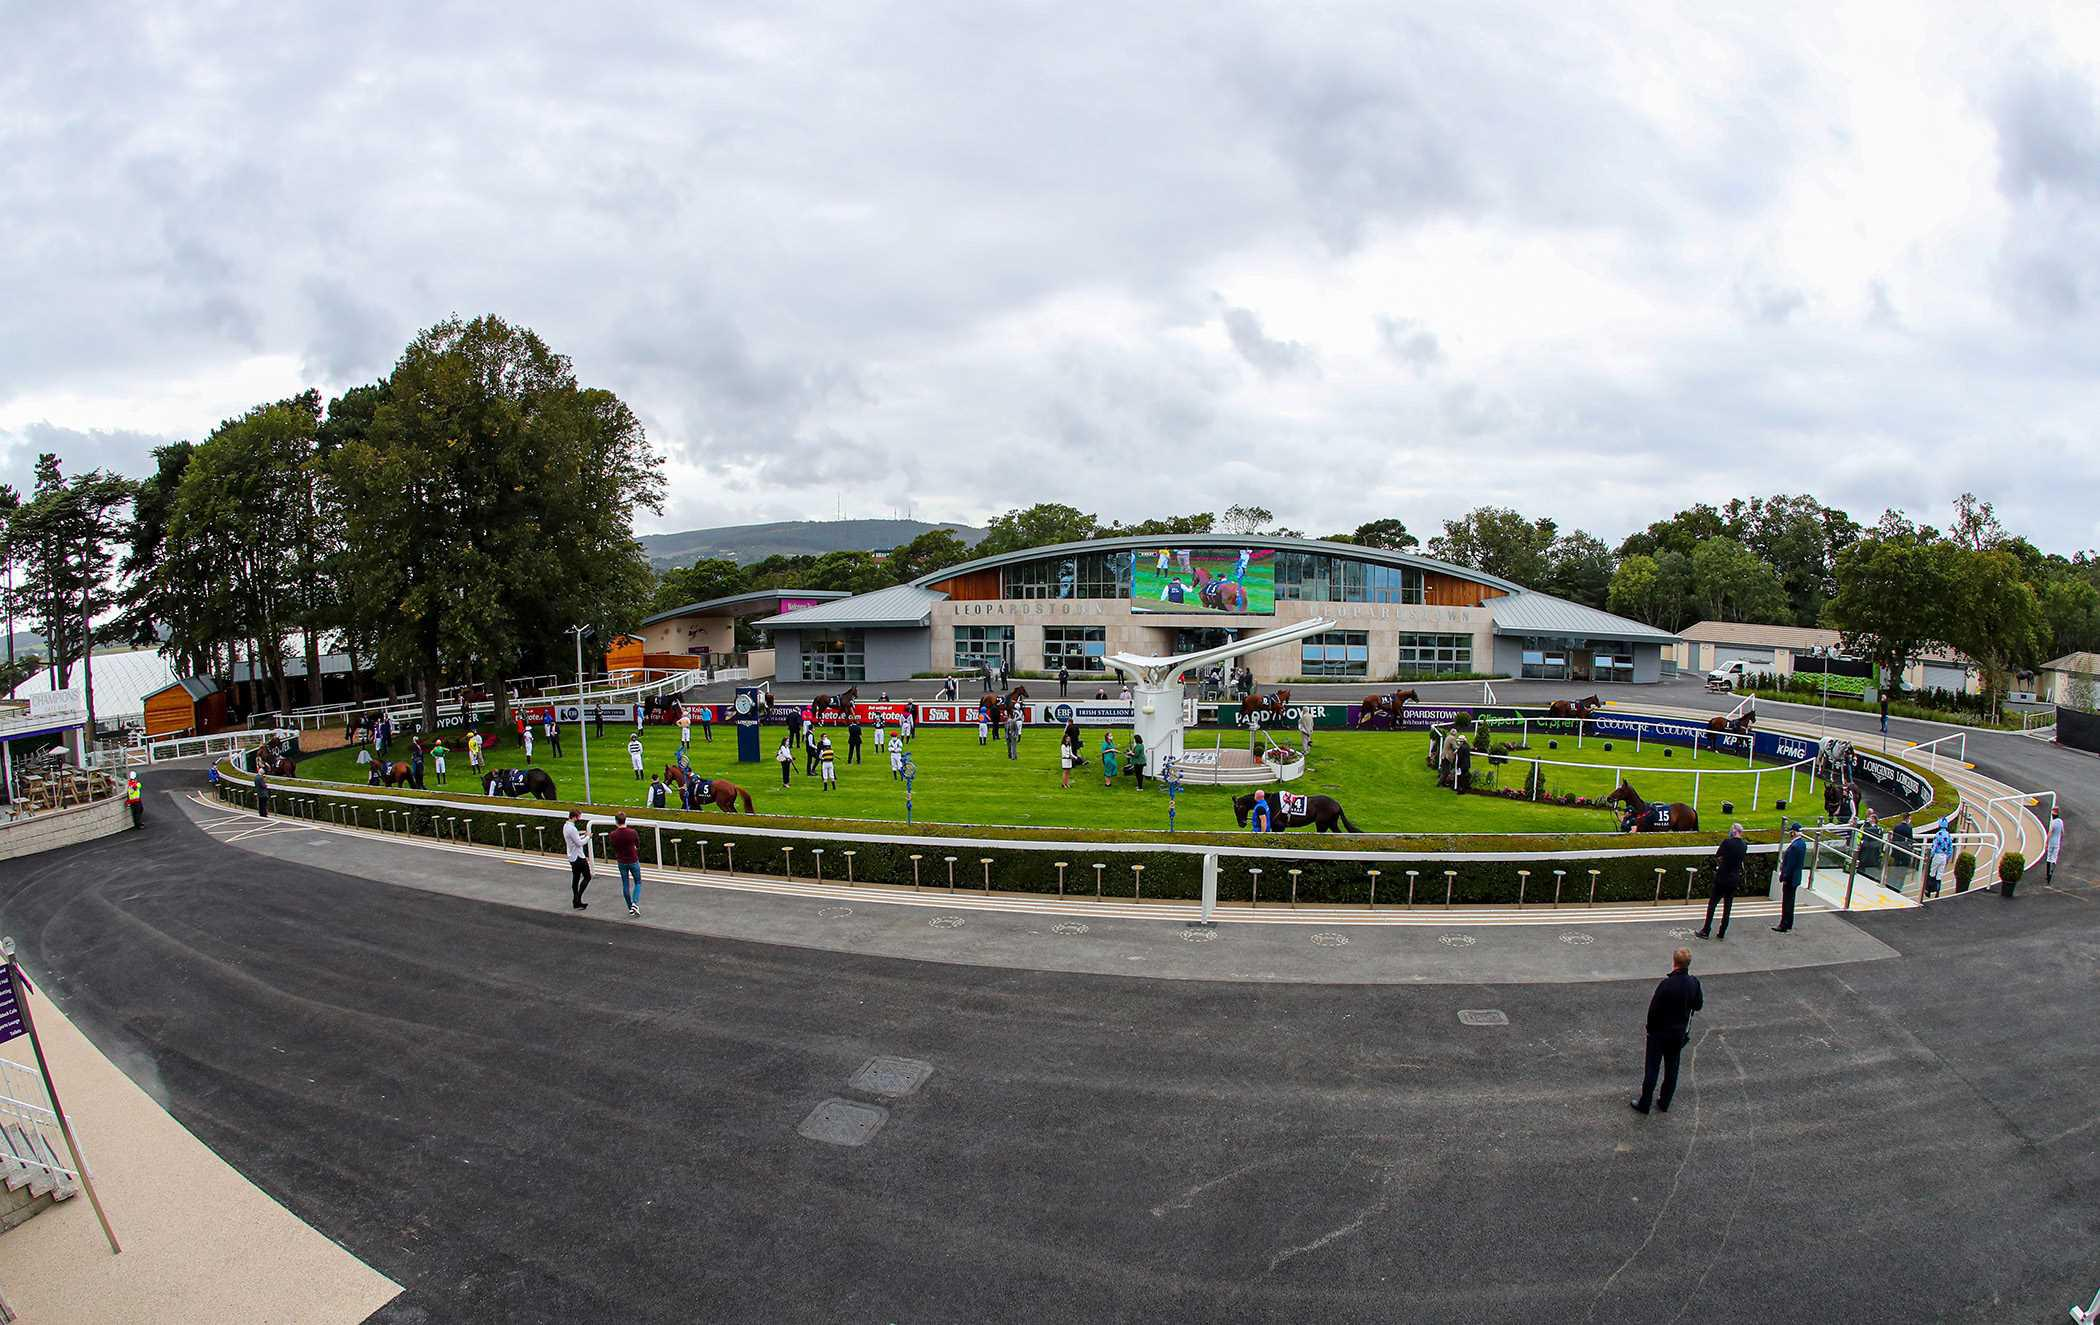 LEOPARDSTOWN COLOUR: Thrilling finishes but we dance alone